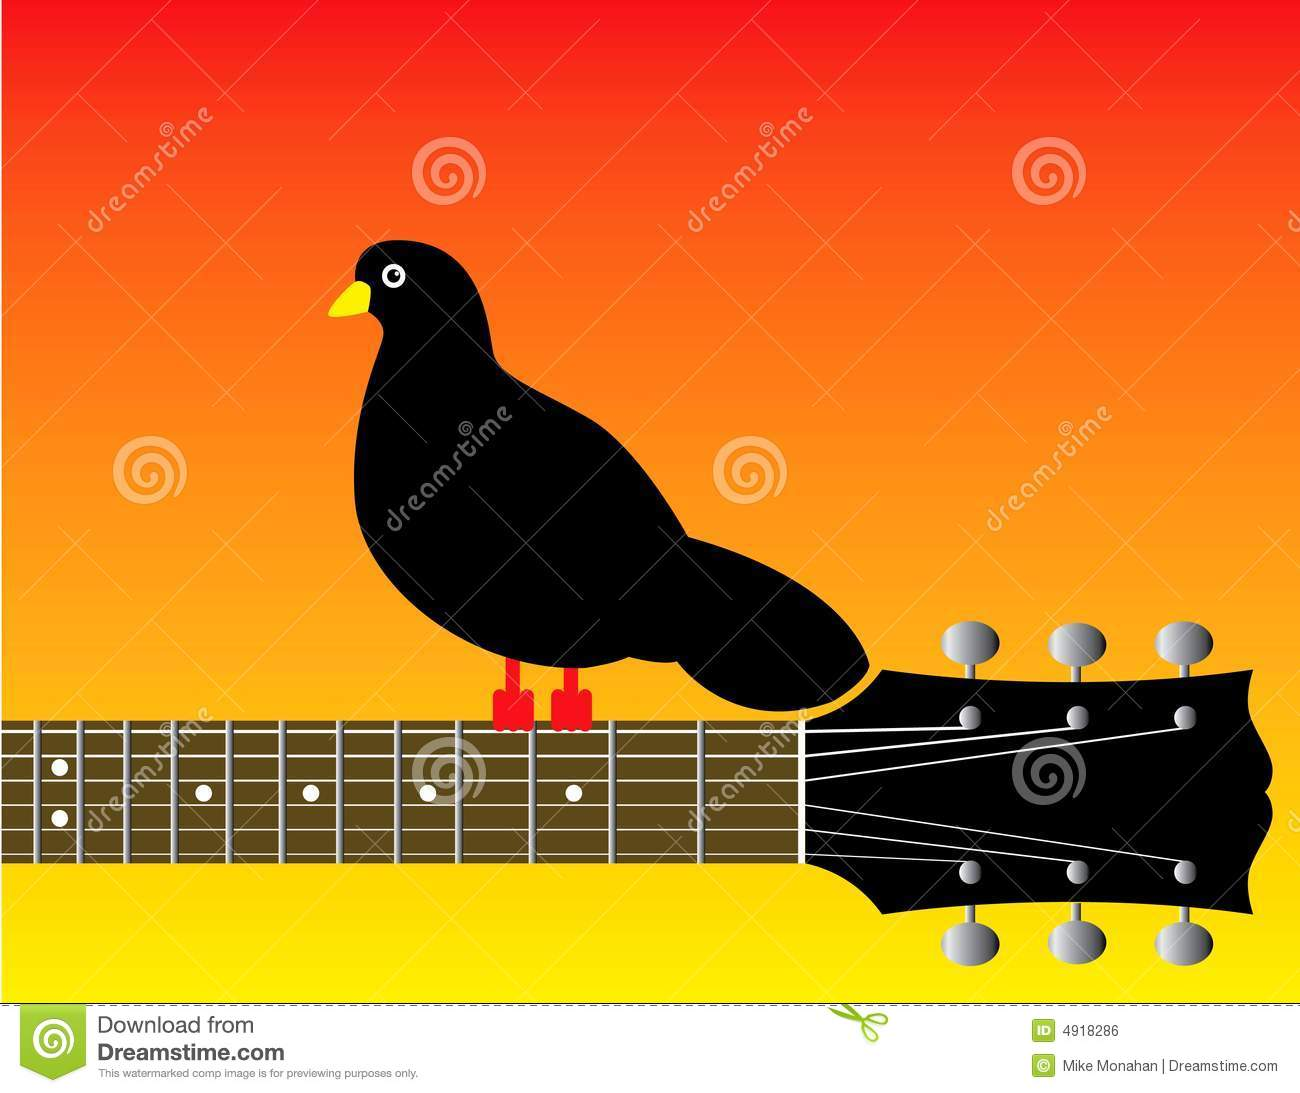 graphic of bird on guitar neck royalty free stock image image 4918286. Black Bedroom Furniture Sets. Home Design Ideas